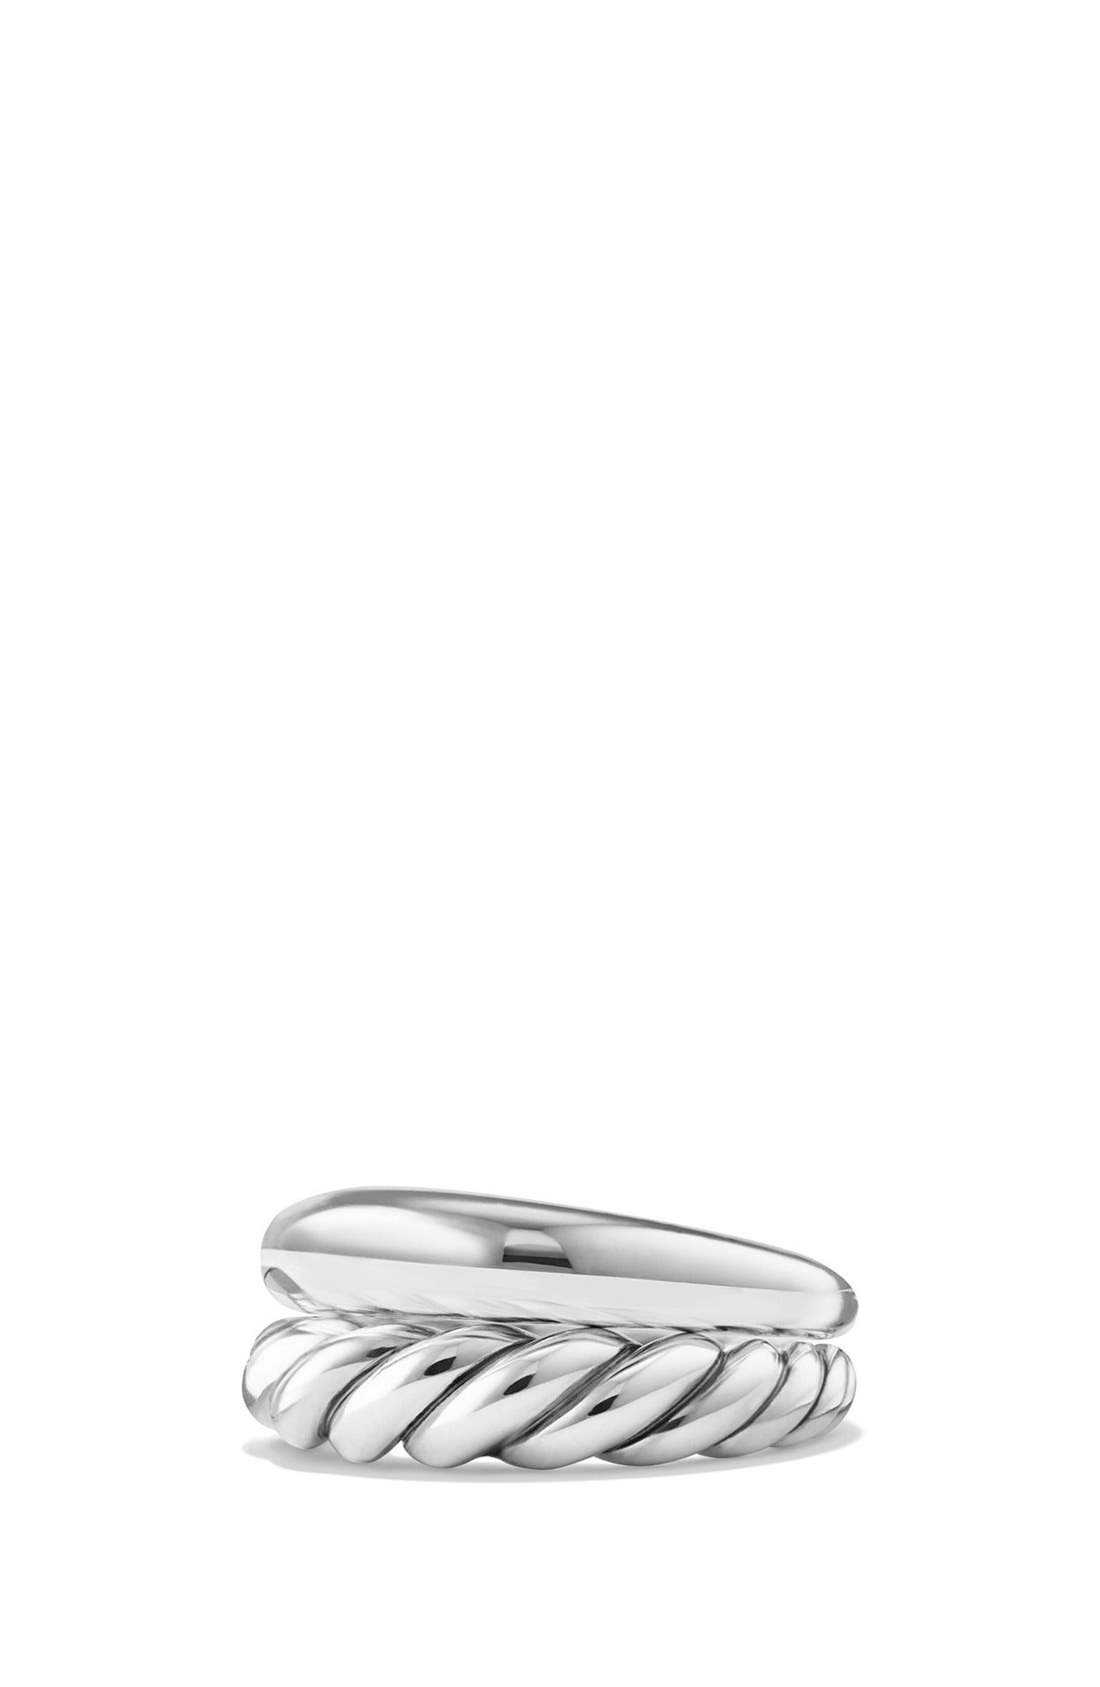 DAVID YURMAN Pure Form Sterling Silver Stacking Rings